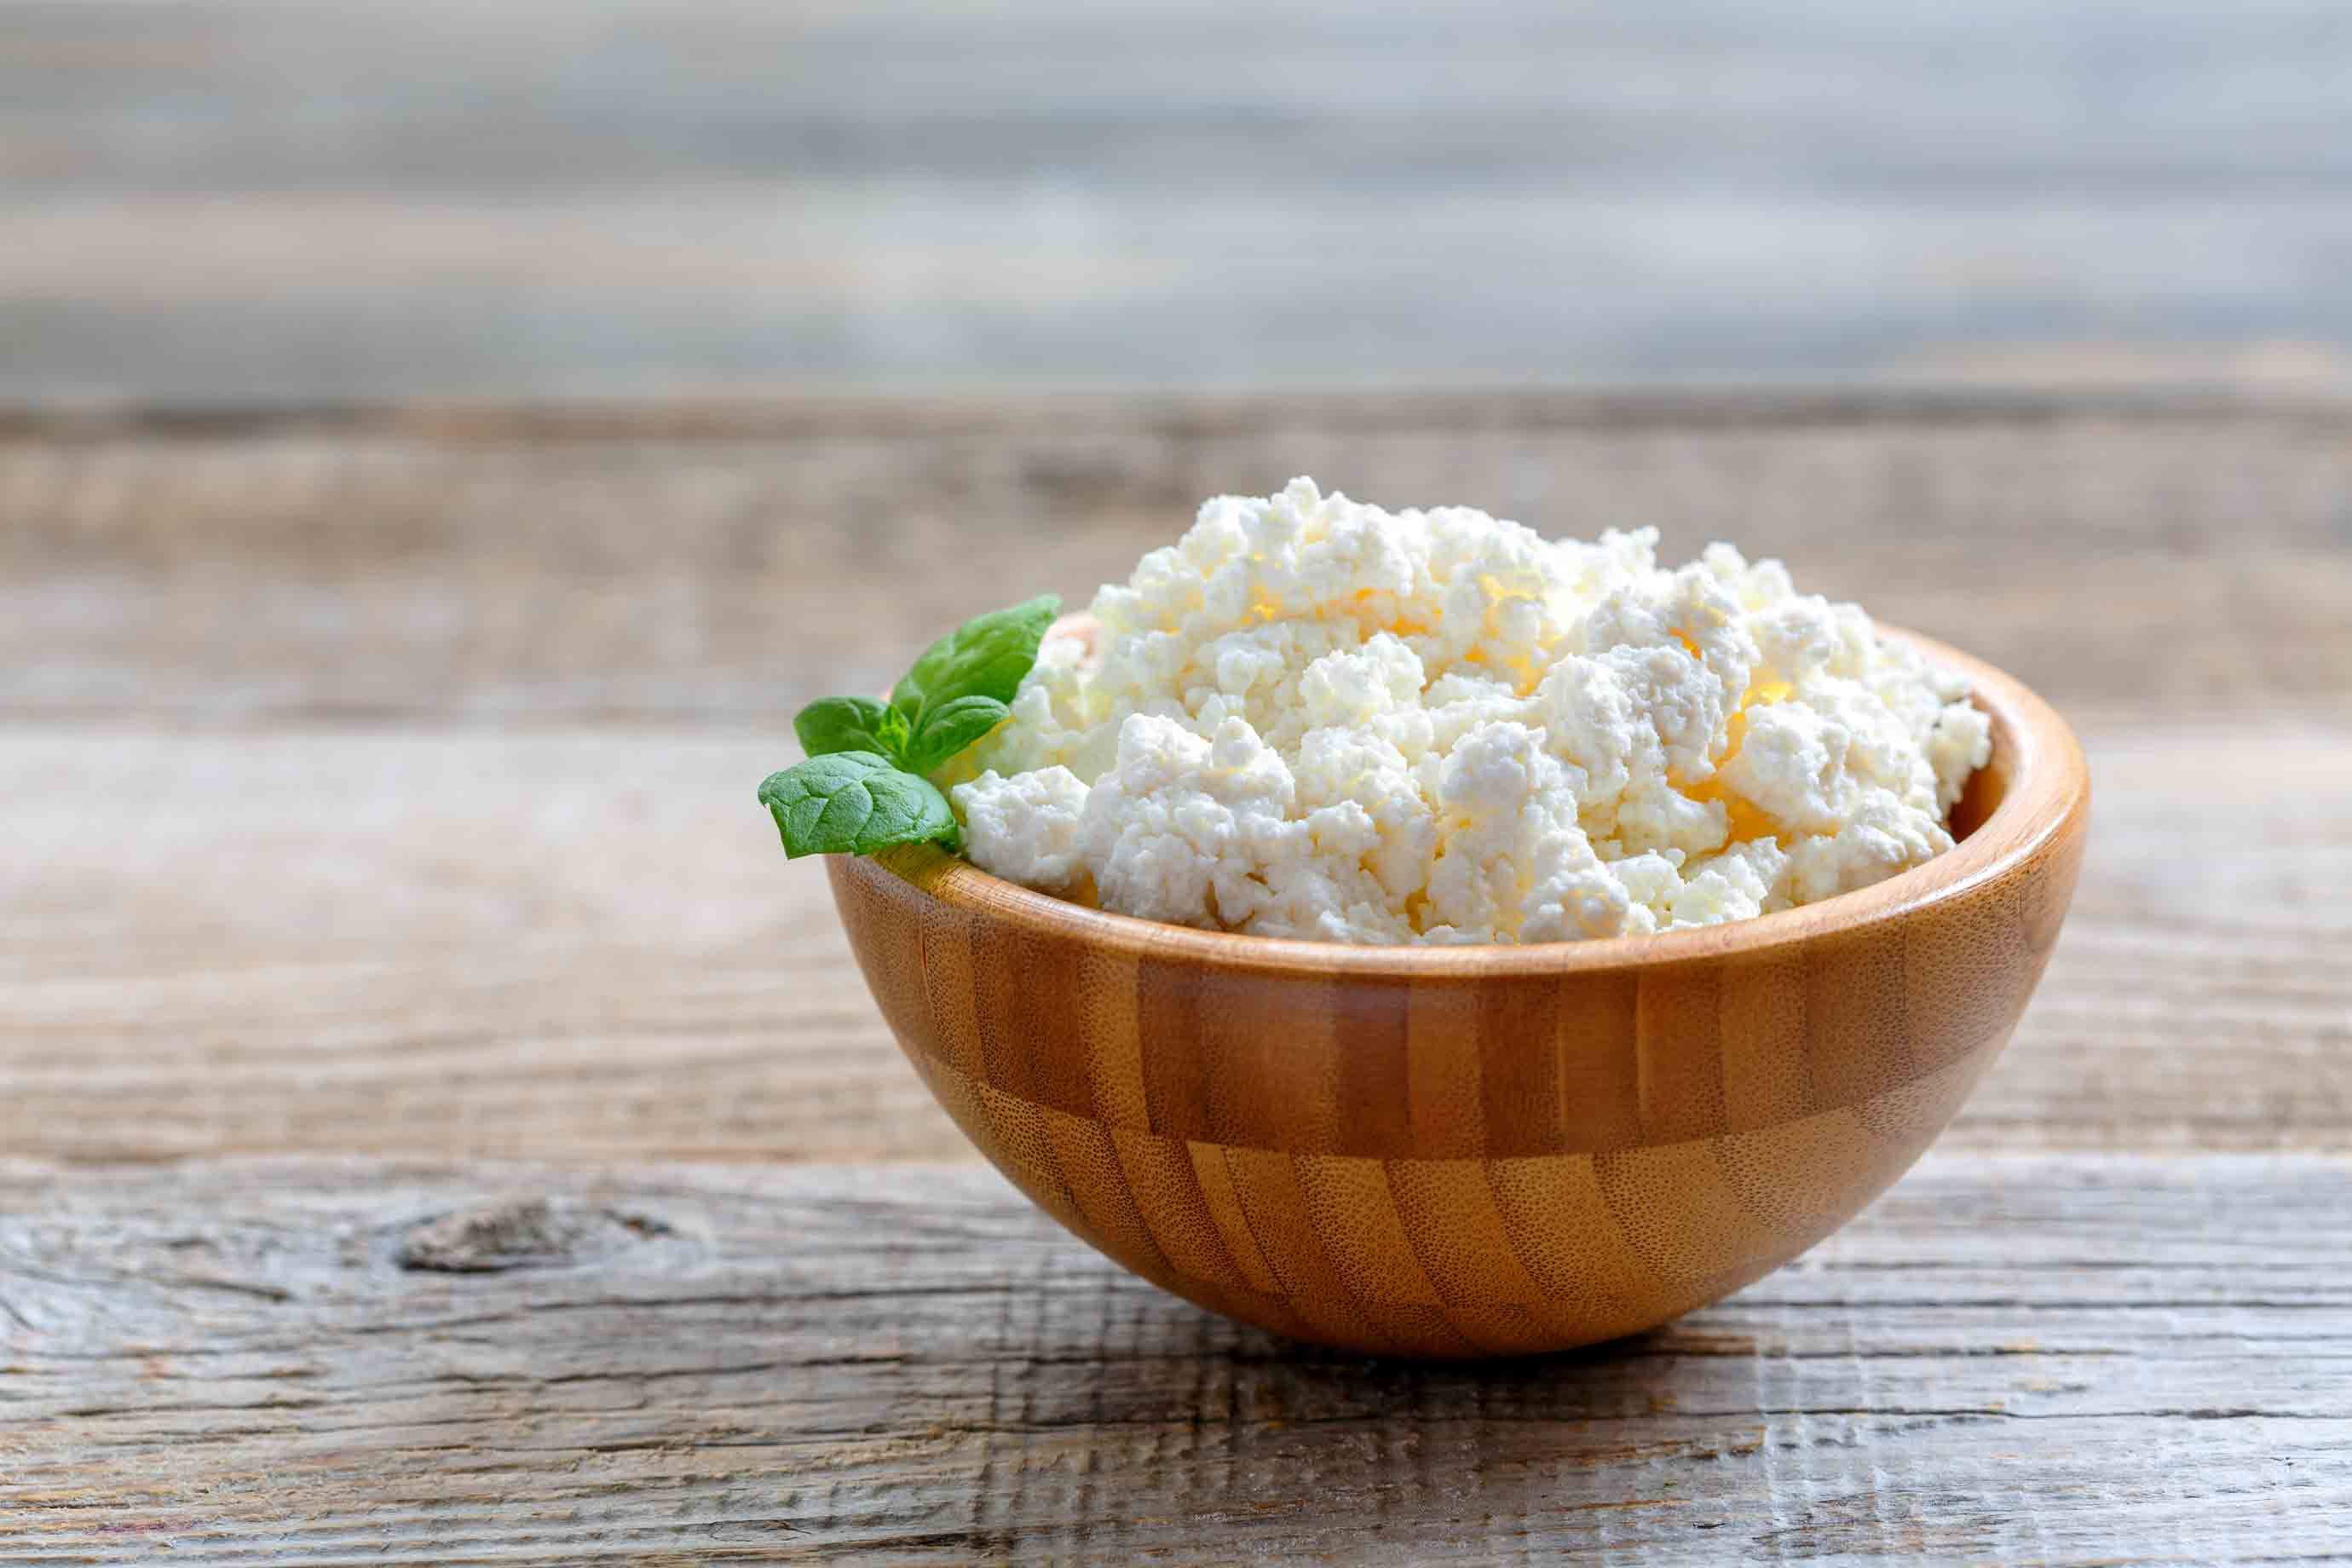 A bowl of cottage cheese